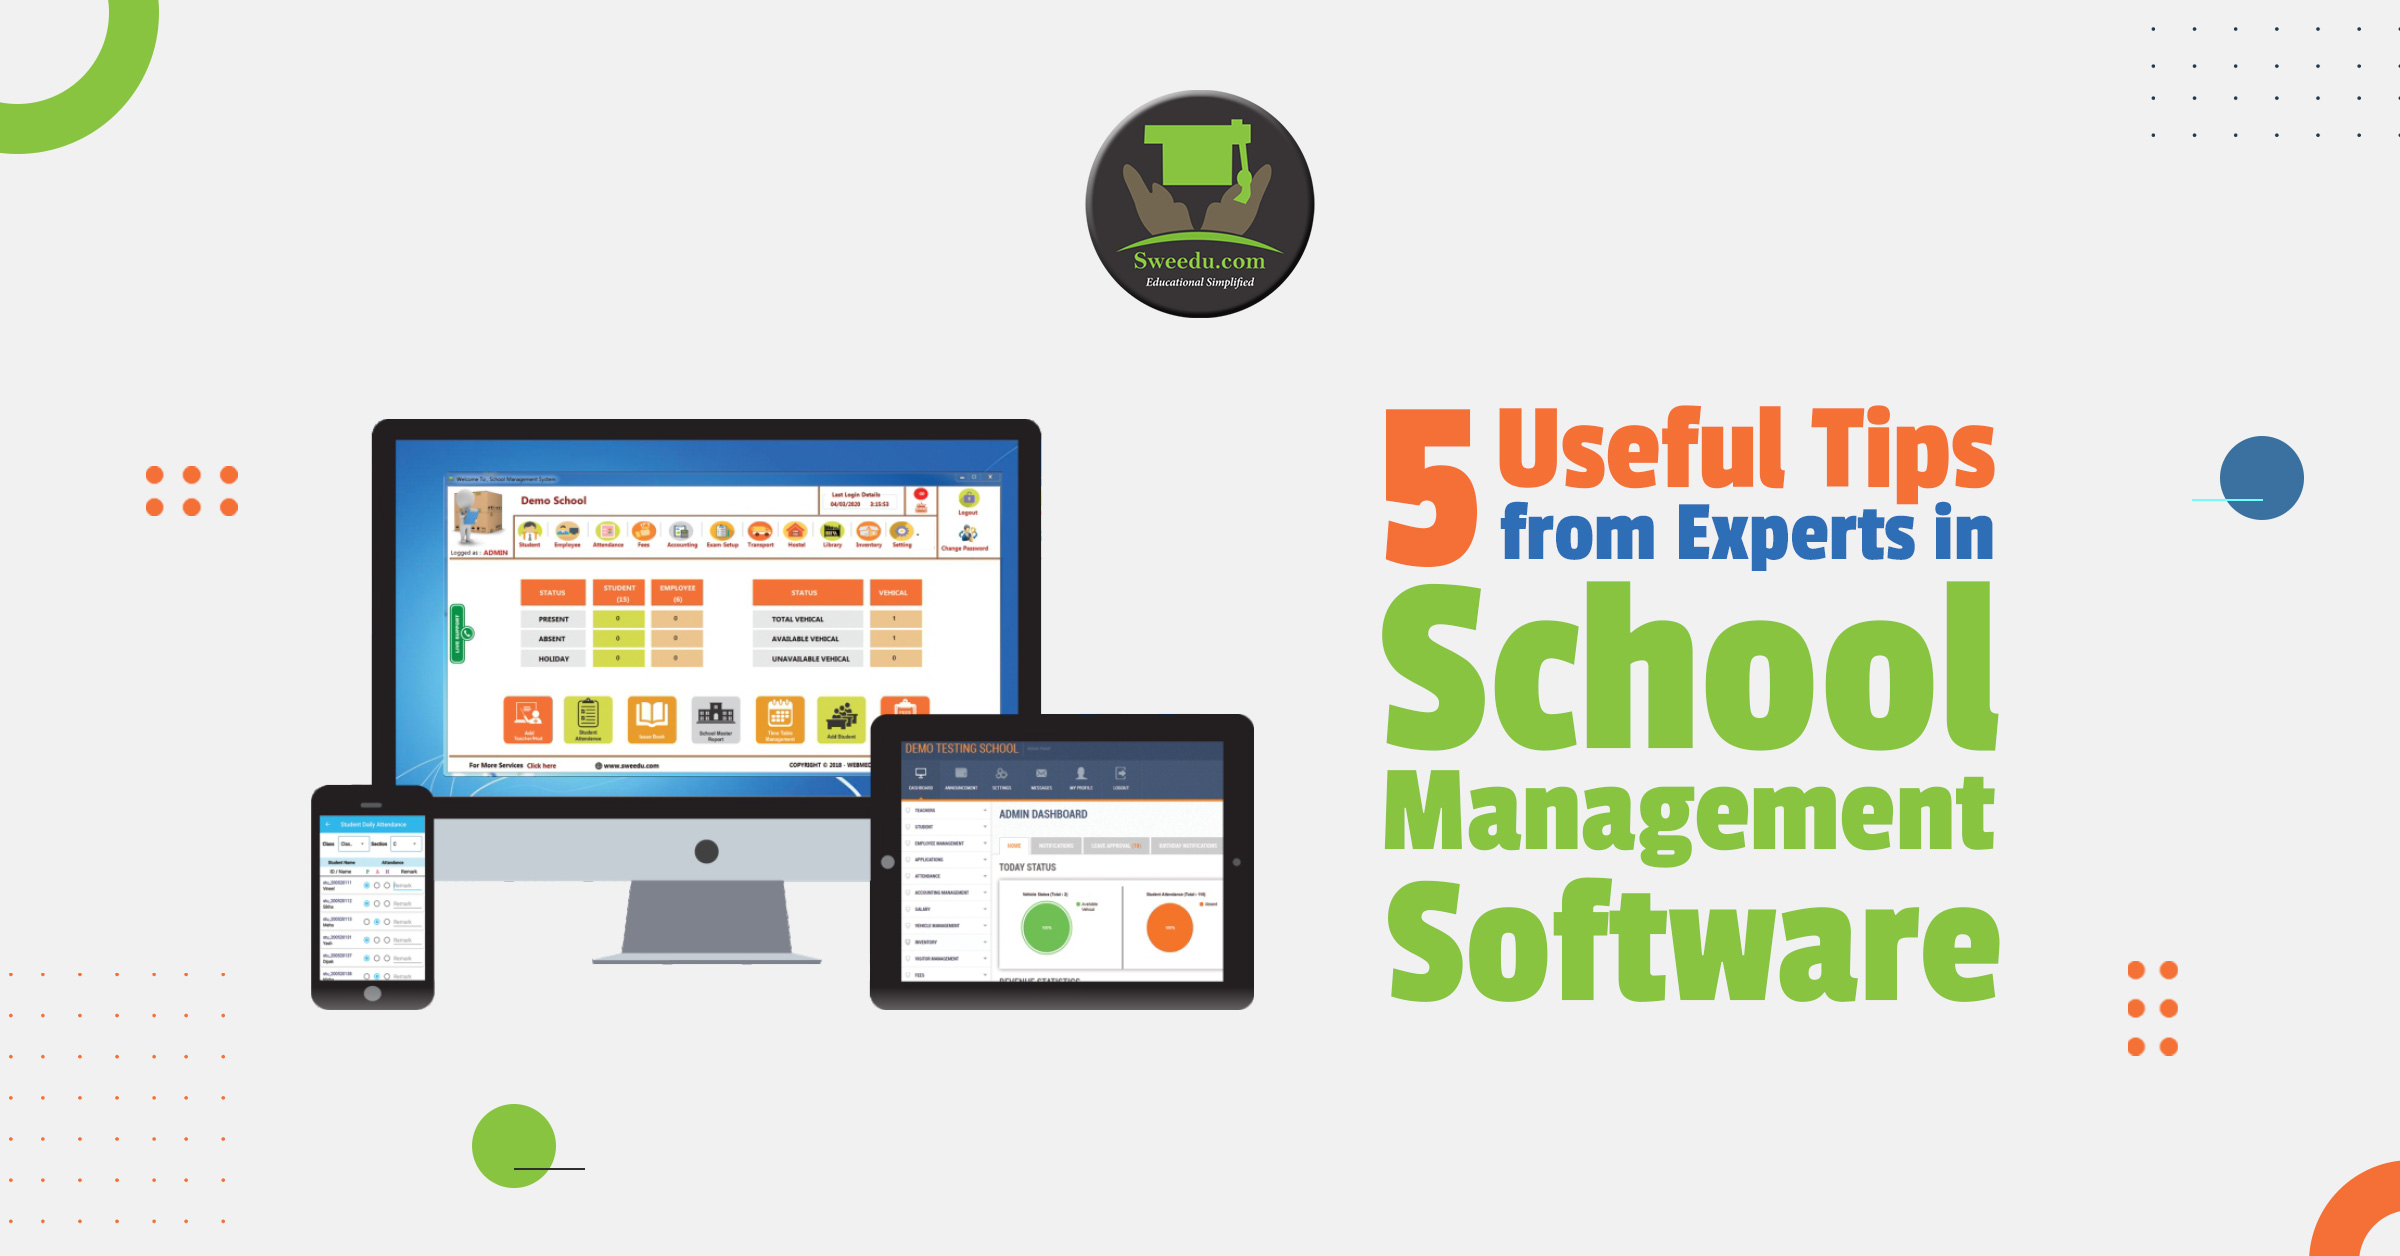 5 Useful Tips from Experts in School Management Software